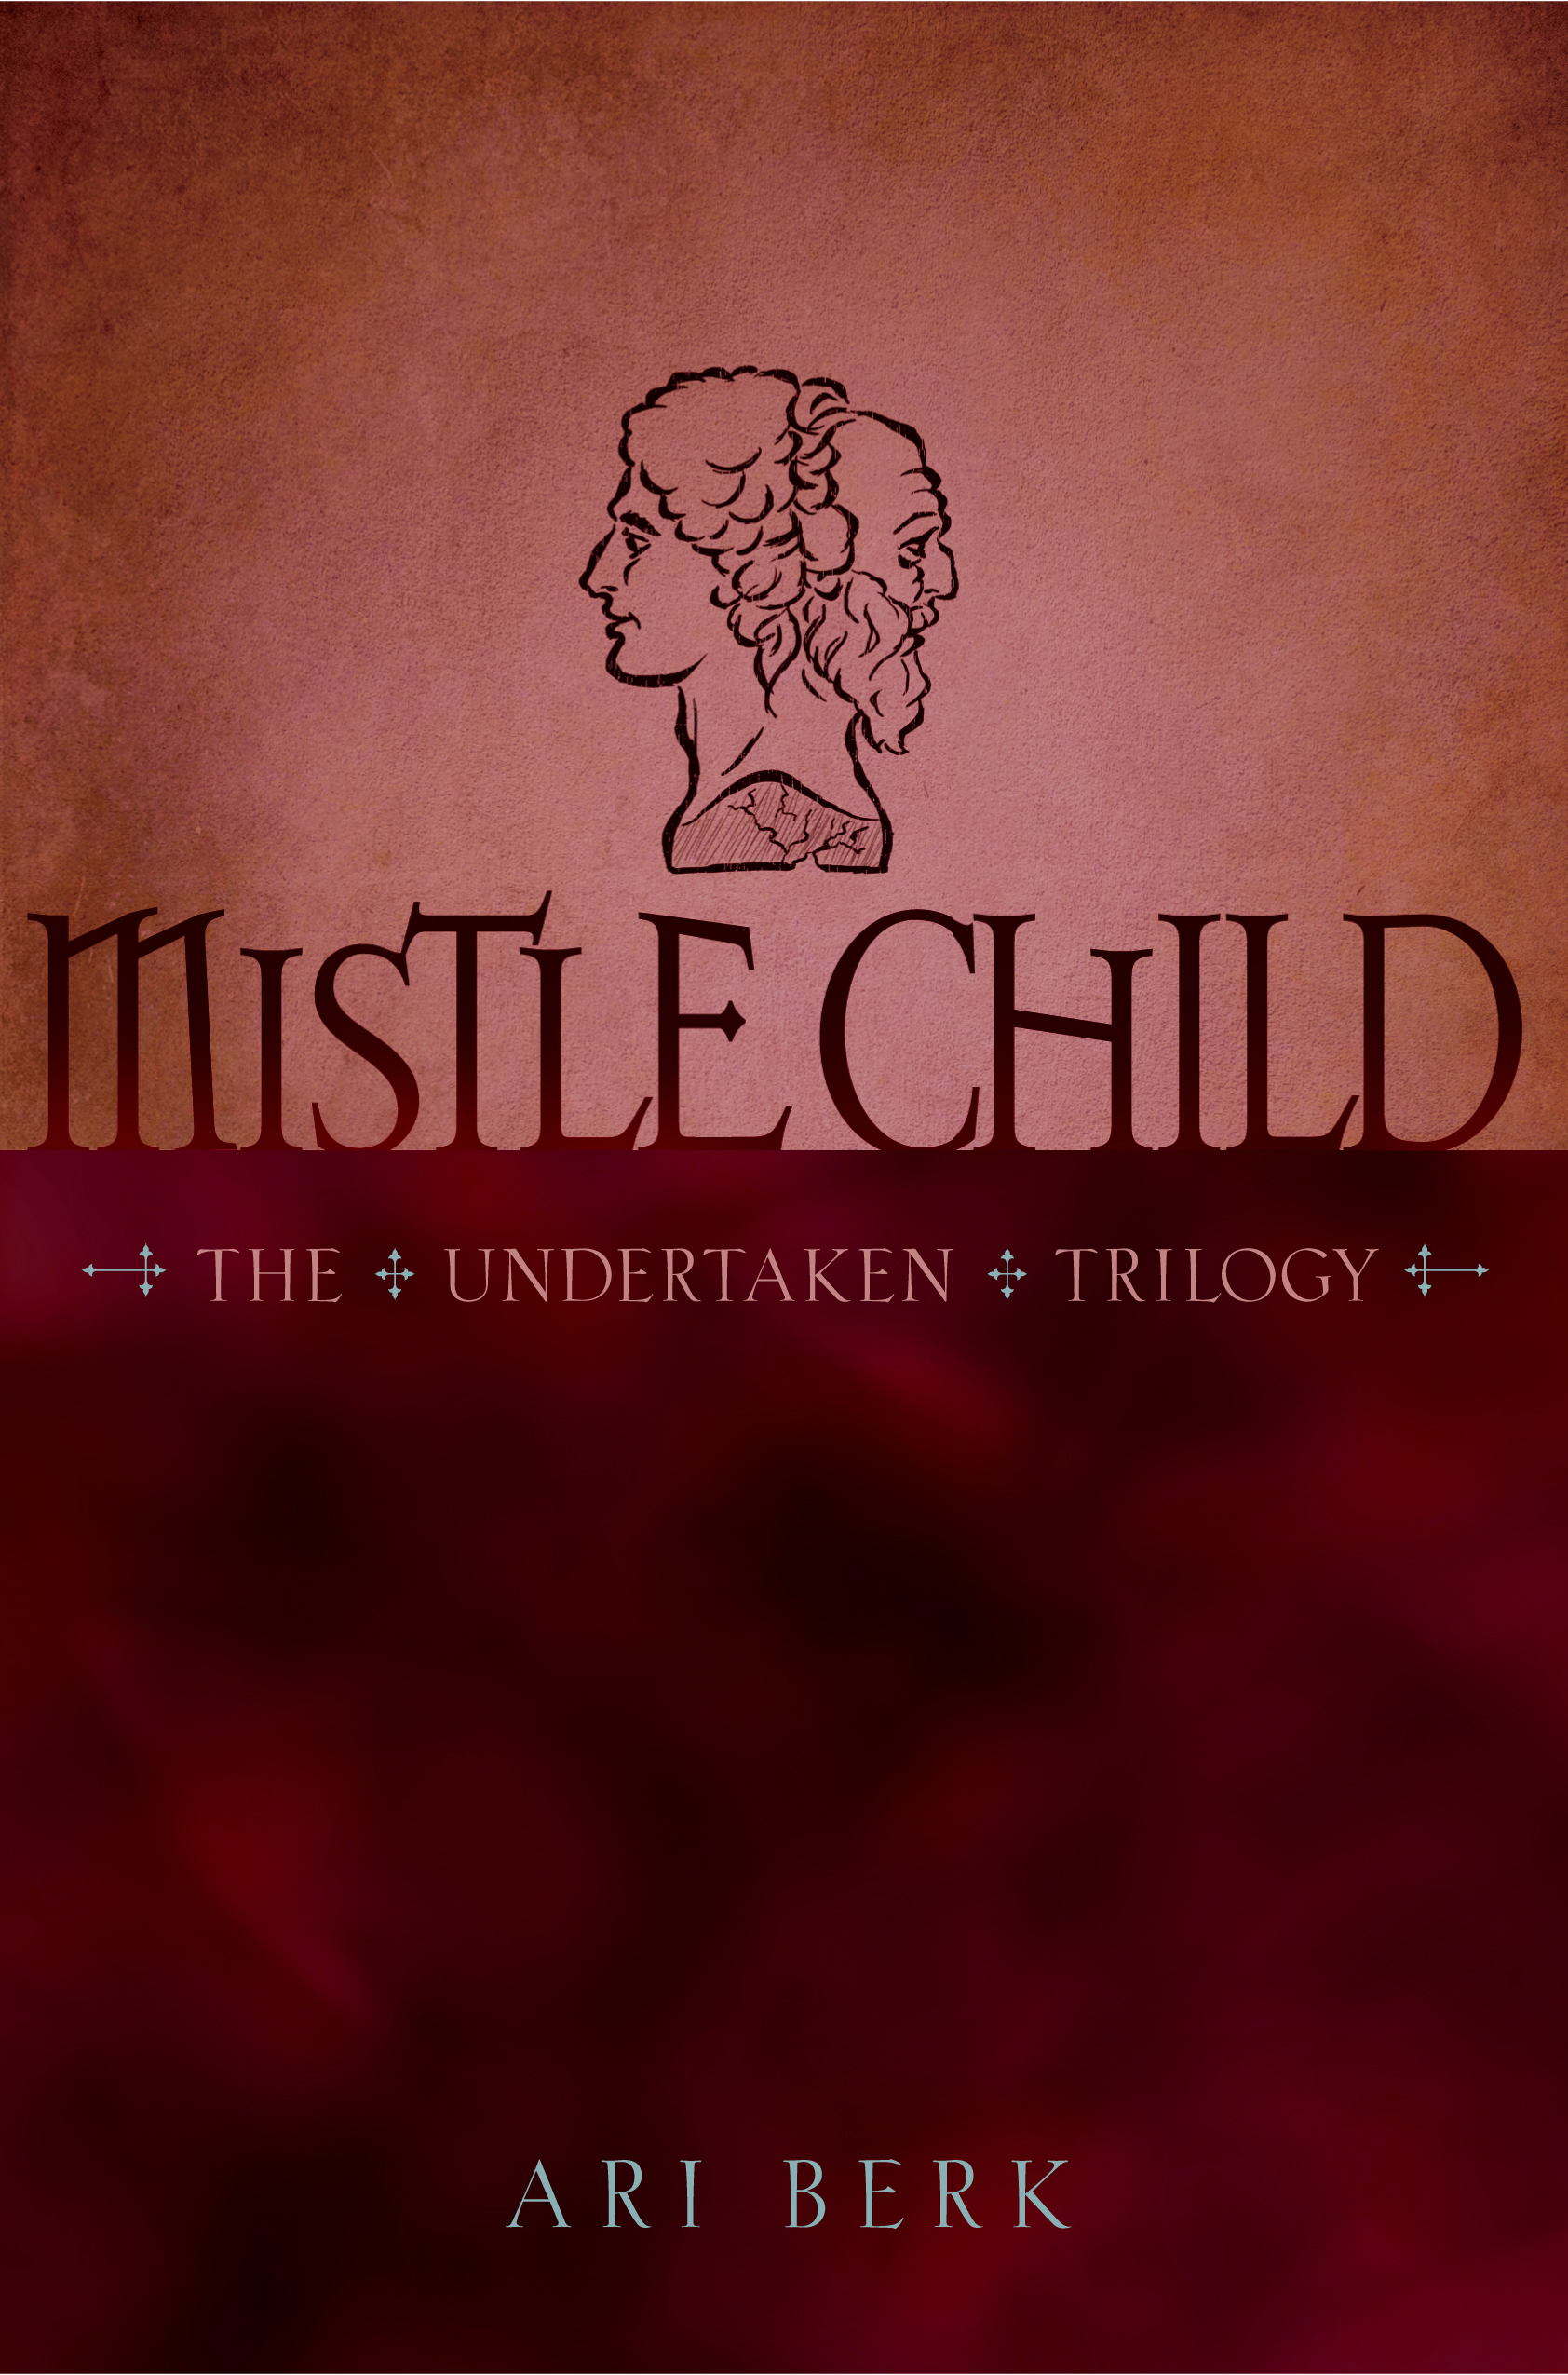 Mistle child 9781416991182 hr